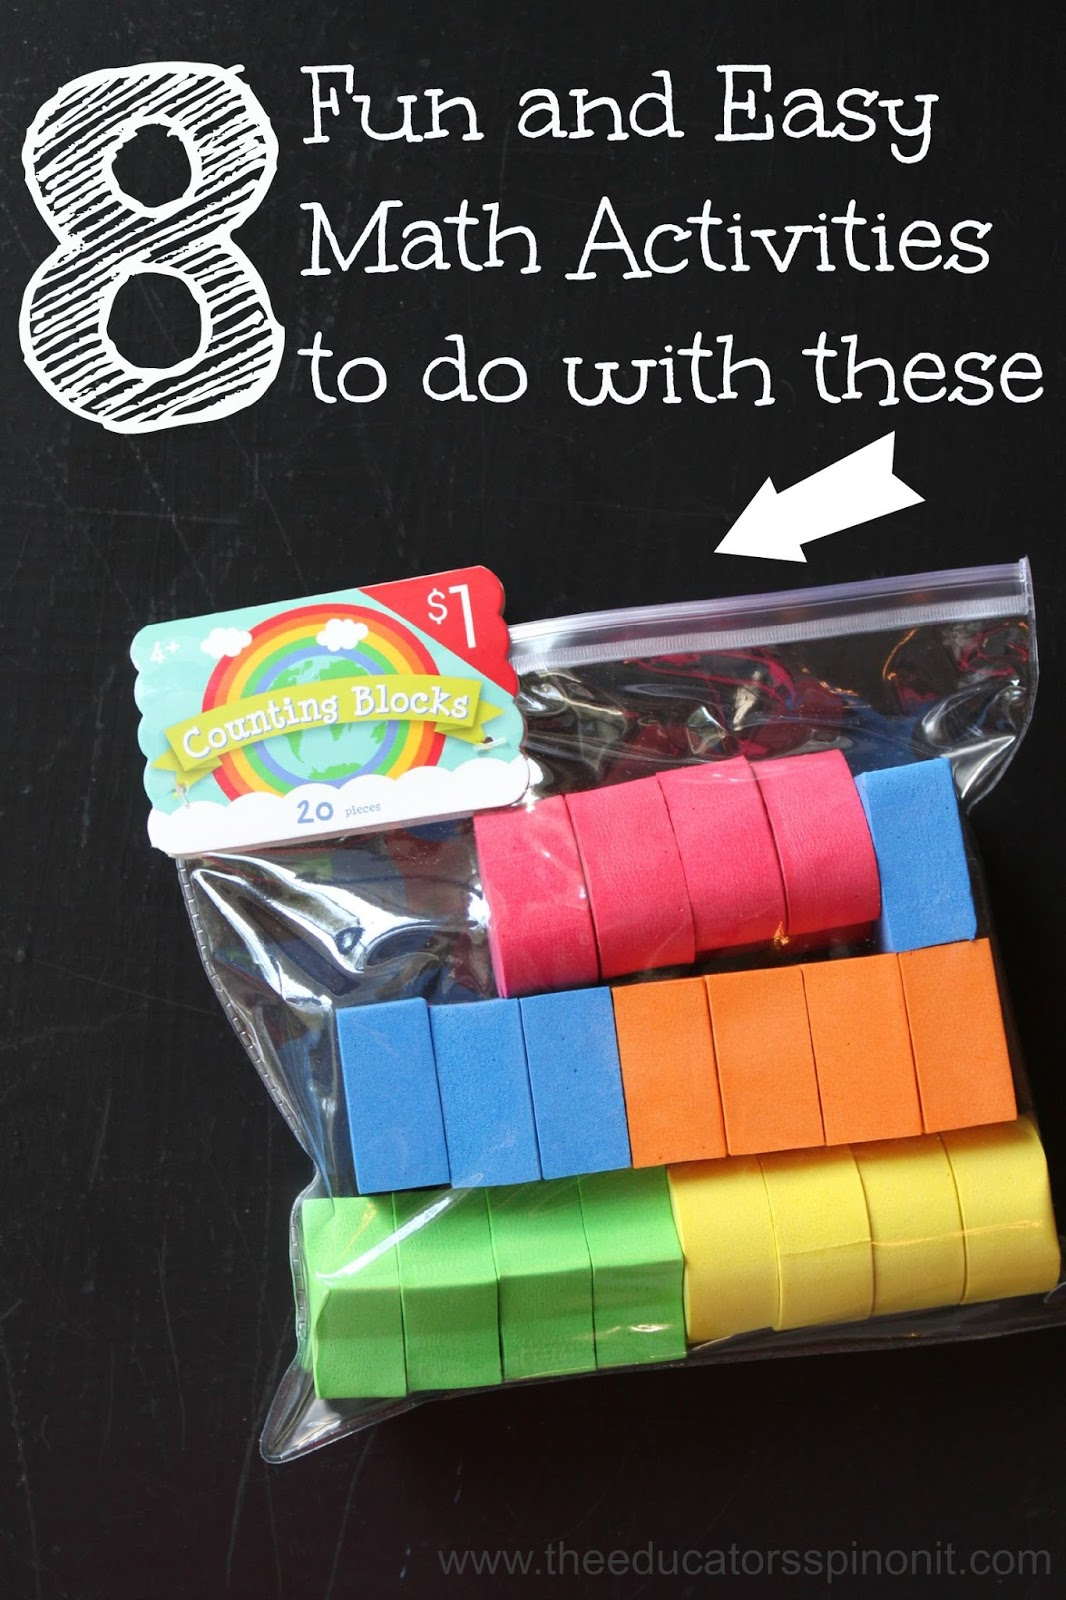 8 Easy Math Activities With Counting Blocks